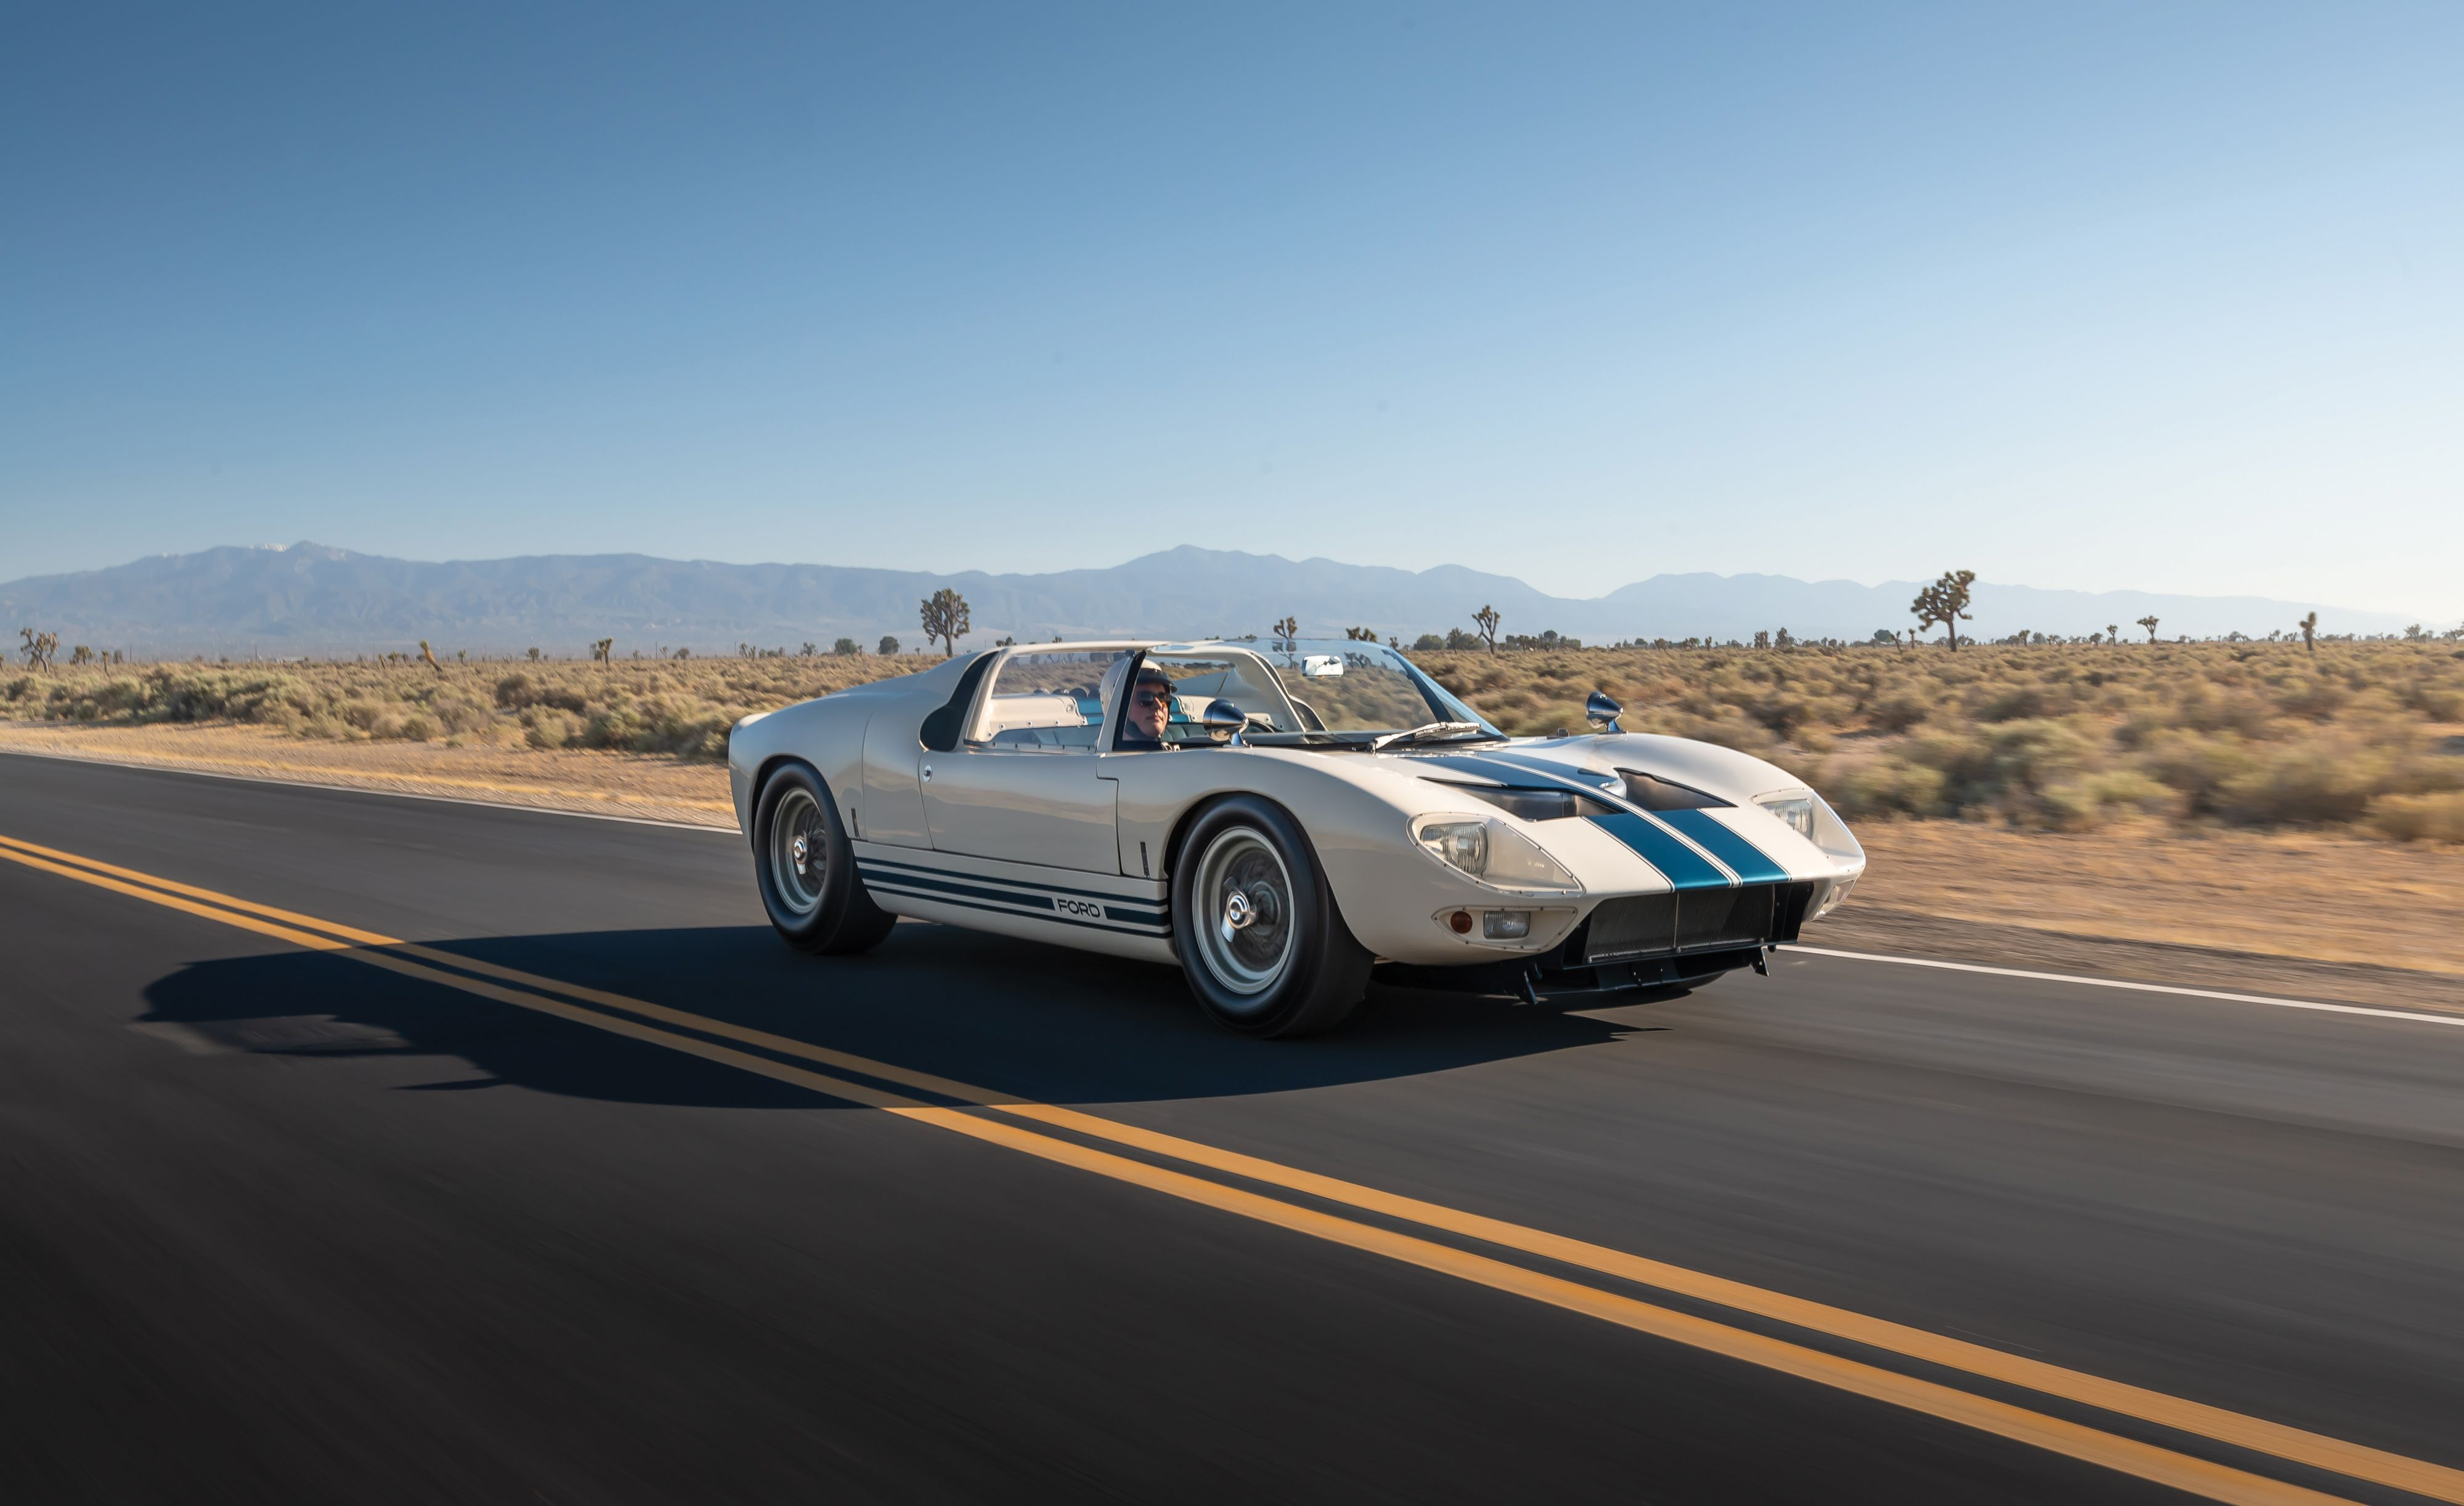 54 Years After We Drove This Ford Gt40 Roadster It S Being Auctioned For Millions